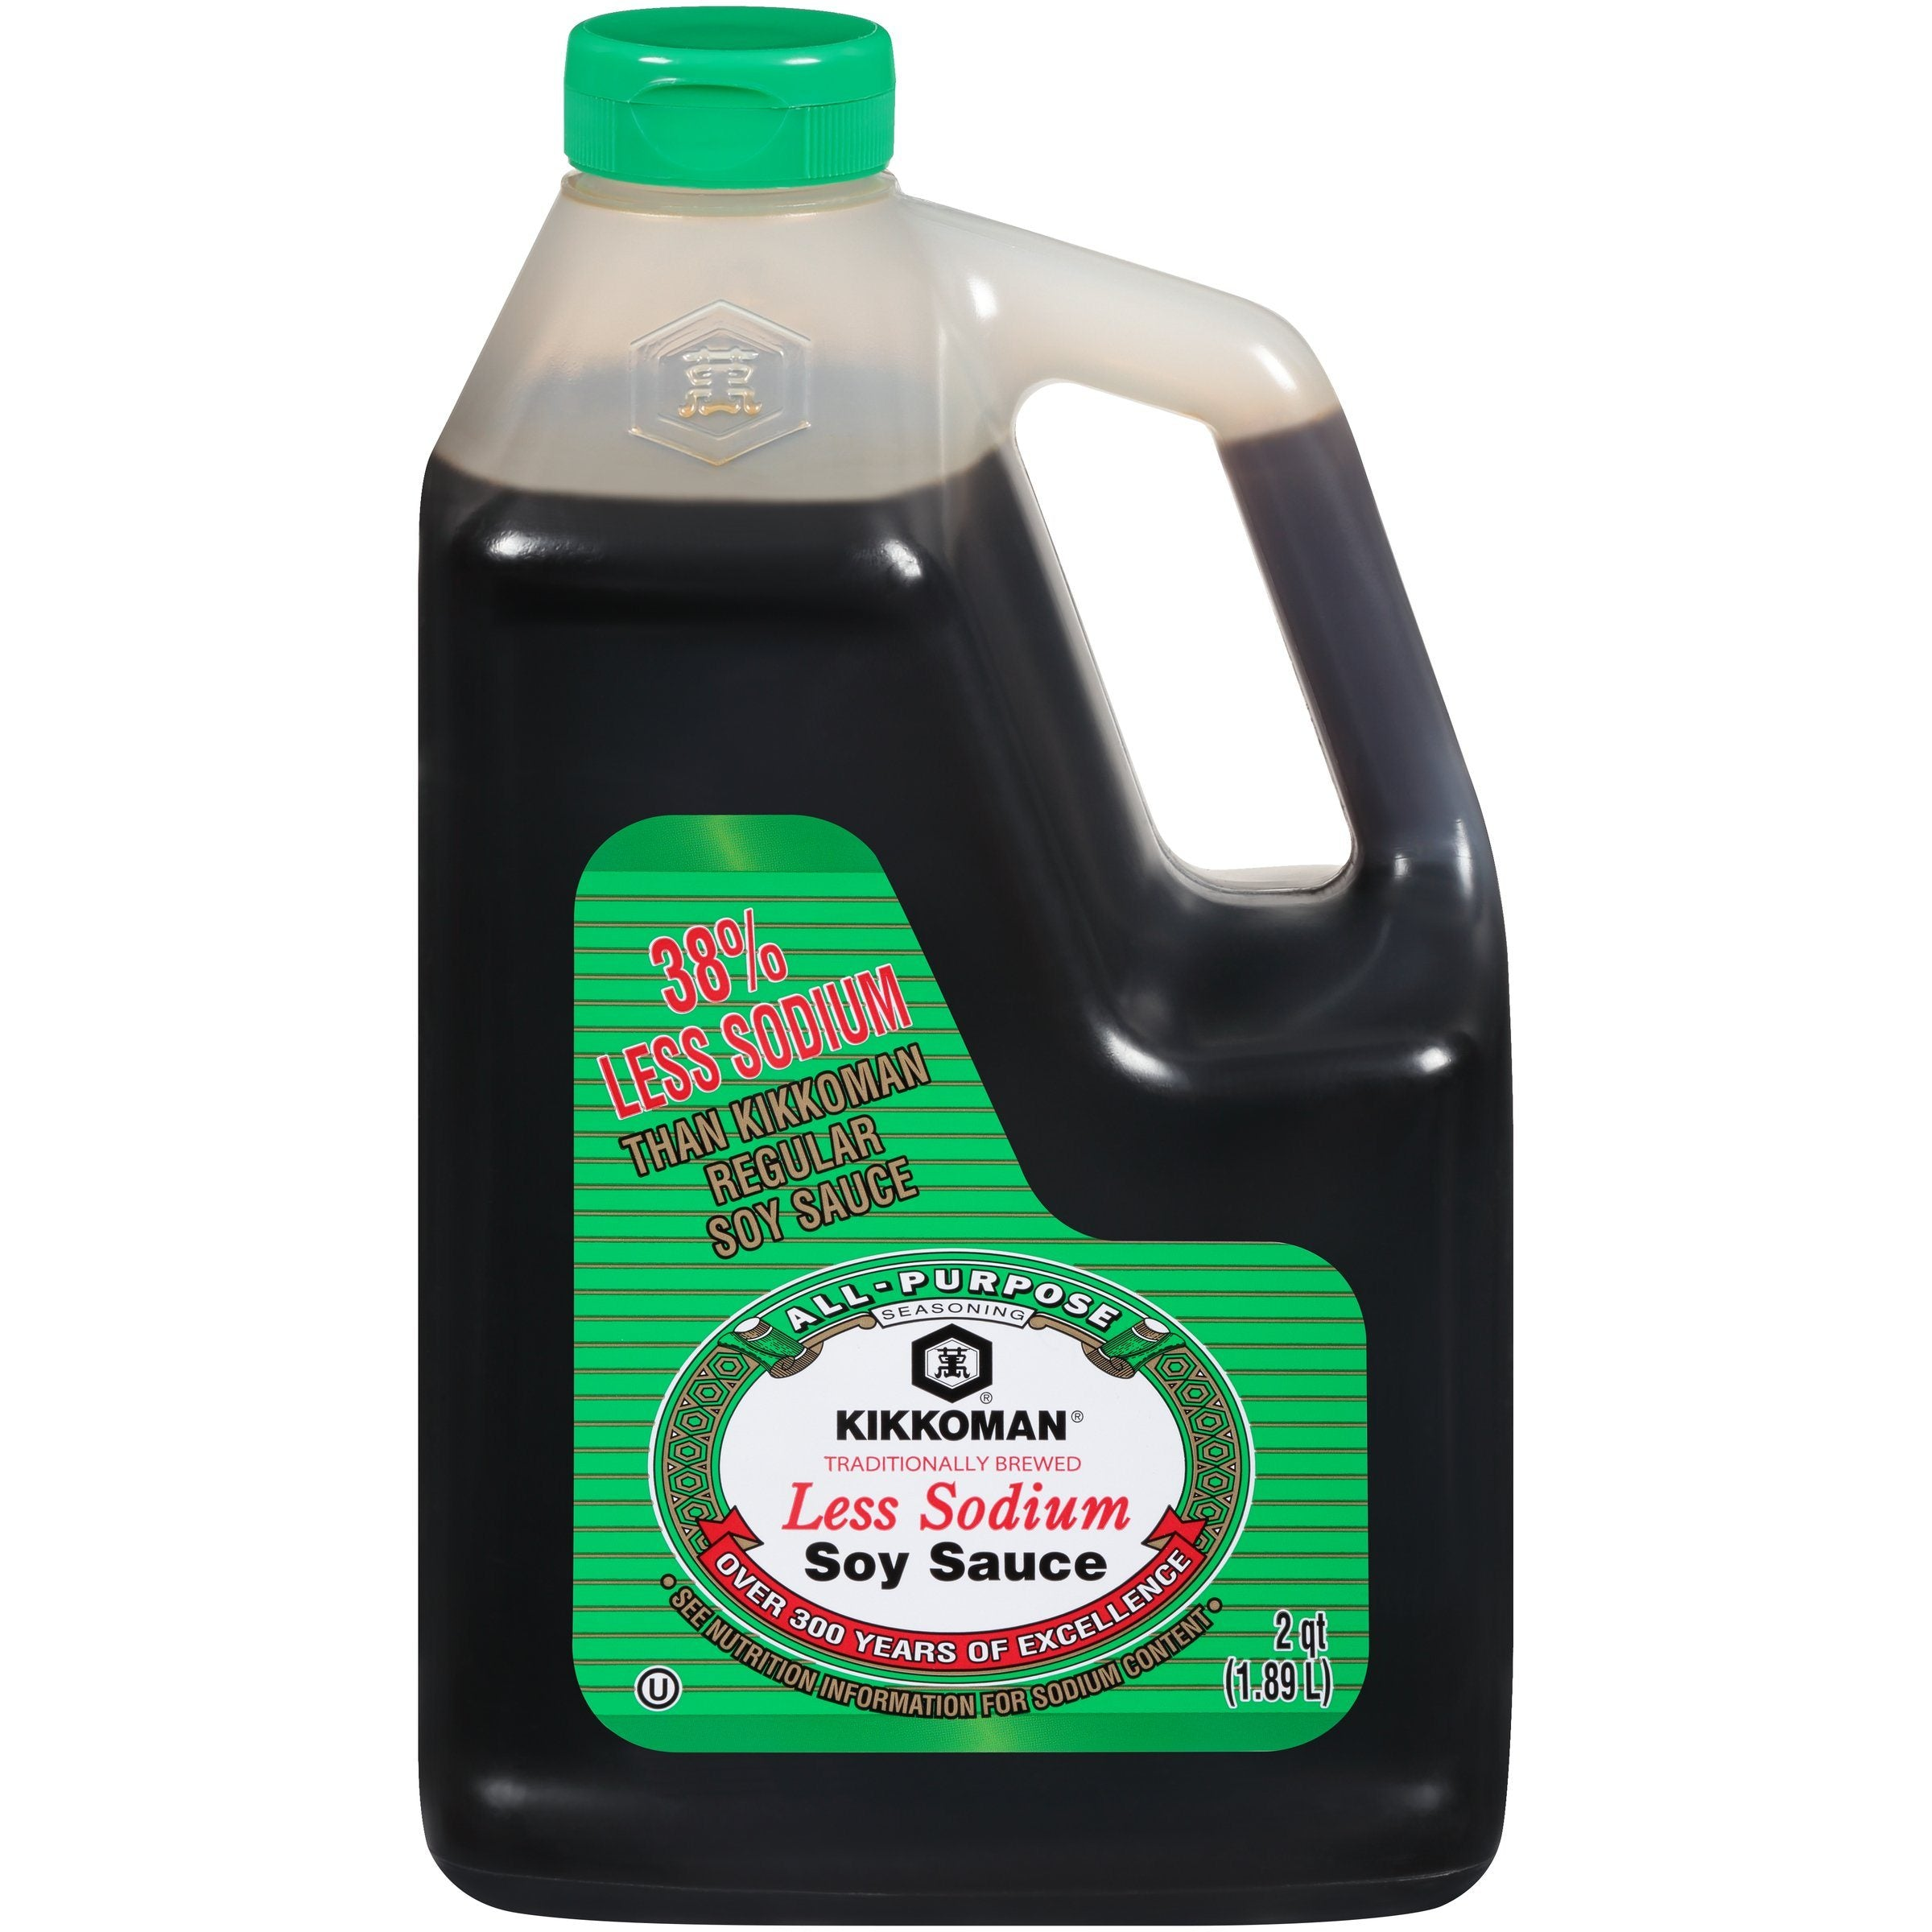 Kikkoman Naturally Brewed Soy Sauce Kikkoman Less Sodium 64 Fluid Ounce